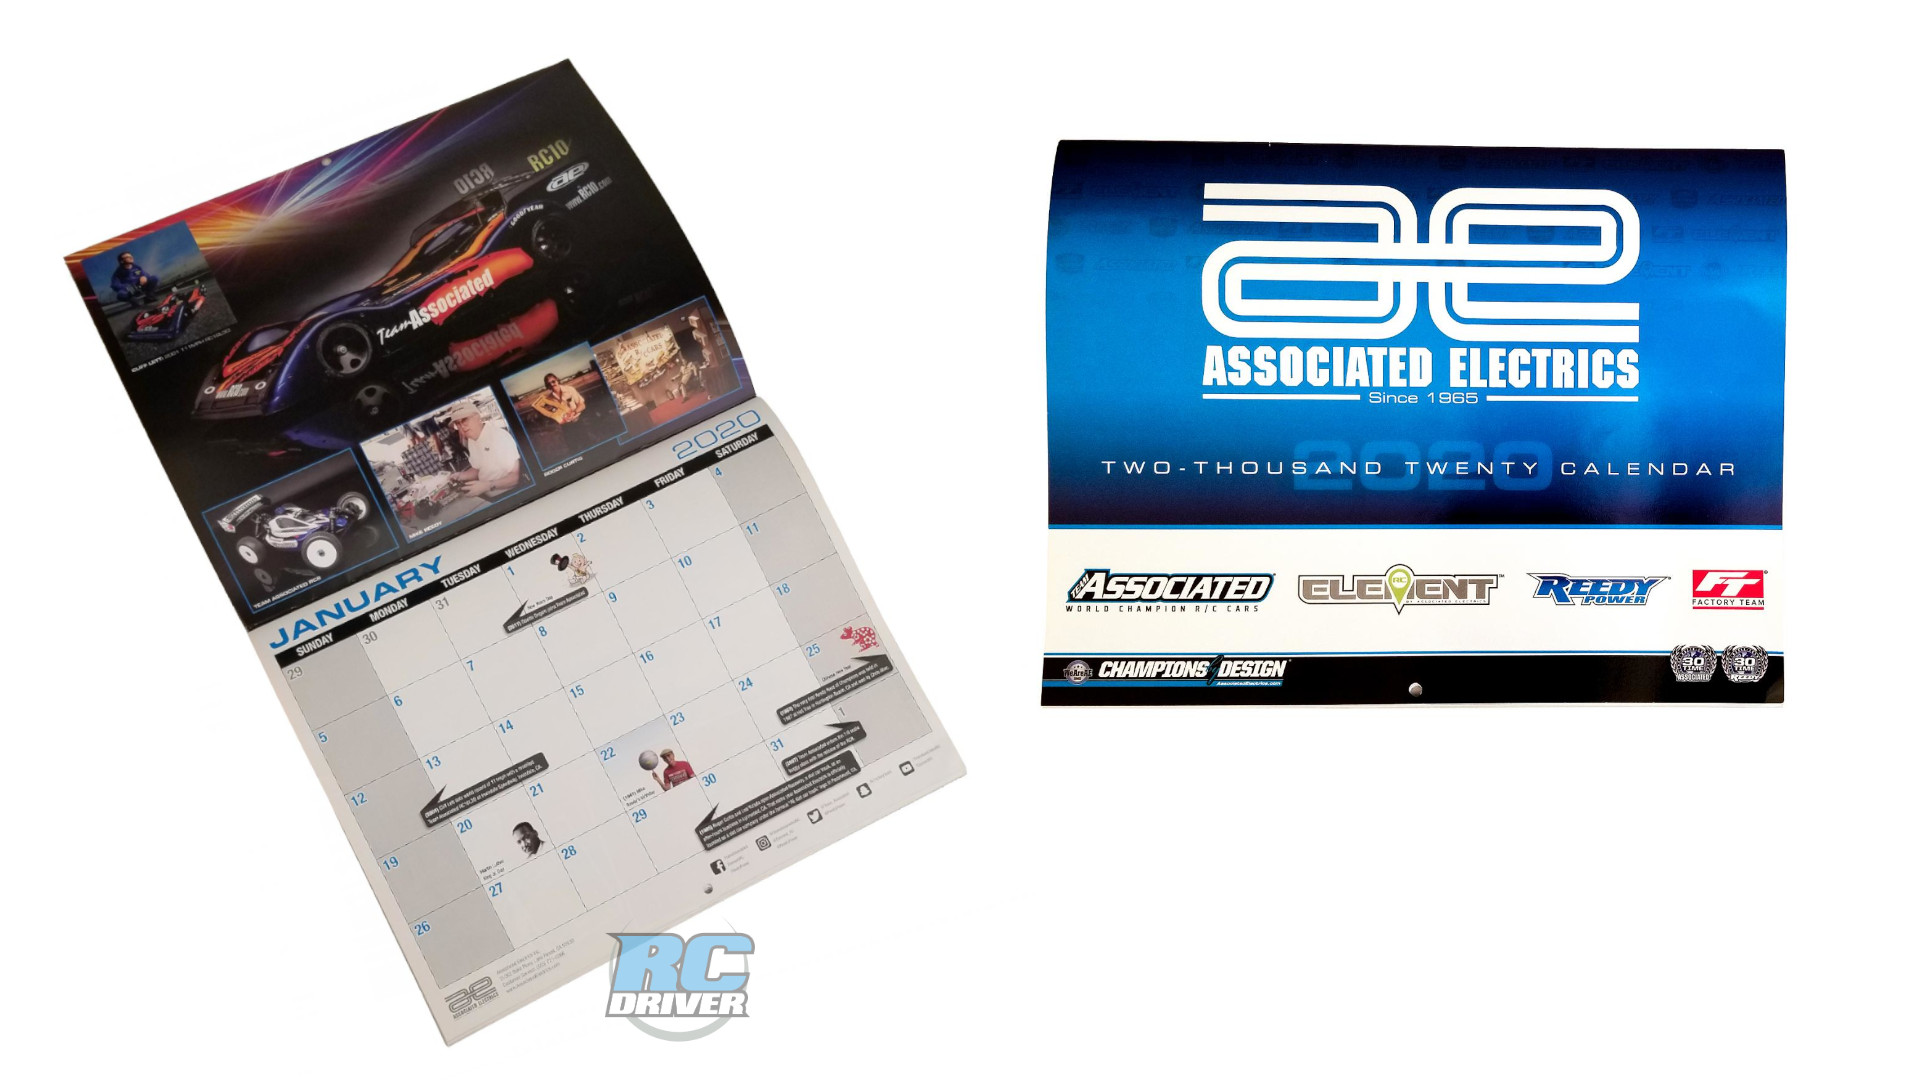 Associated Electrics 2020 Calendar - Just Announced